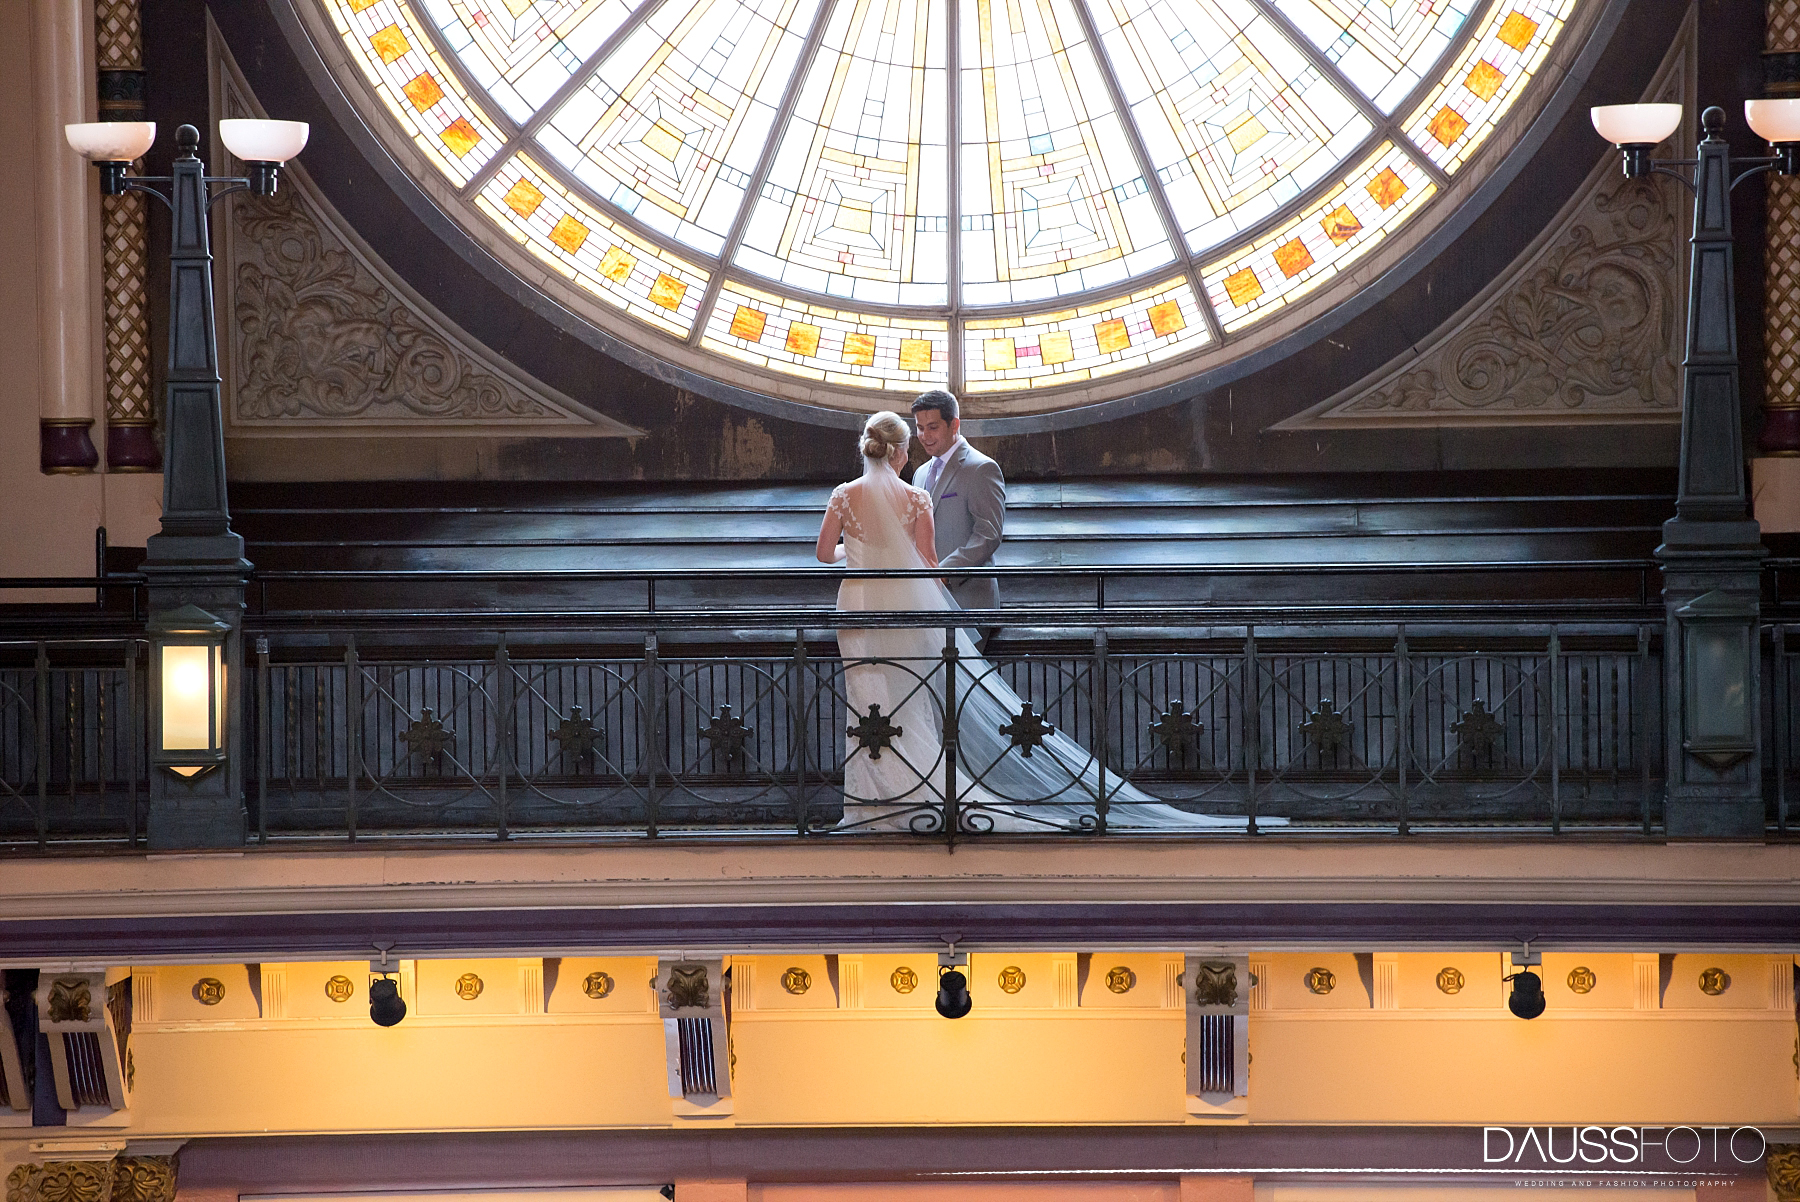 DaussFOTO_20160625_0100_Indiana Wedding Photographer_Crowne Plaza at Historic Union Station.jpg